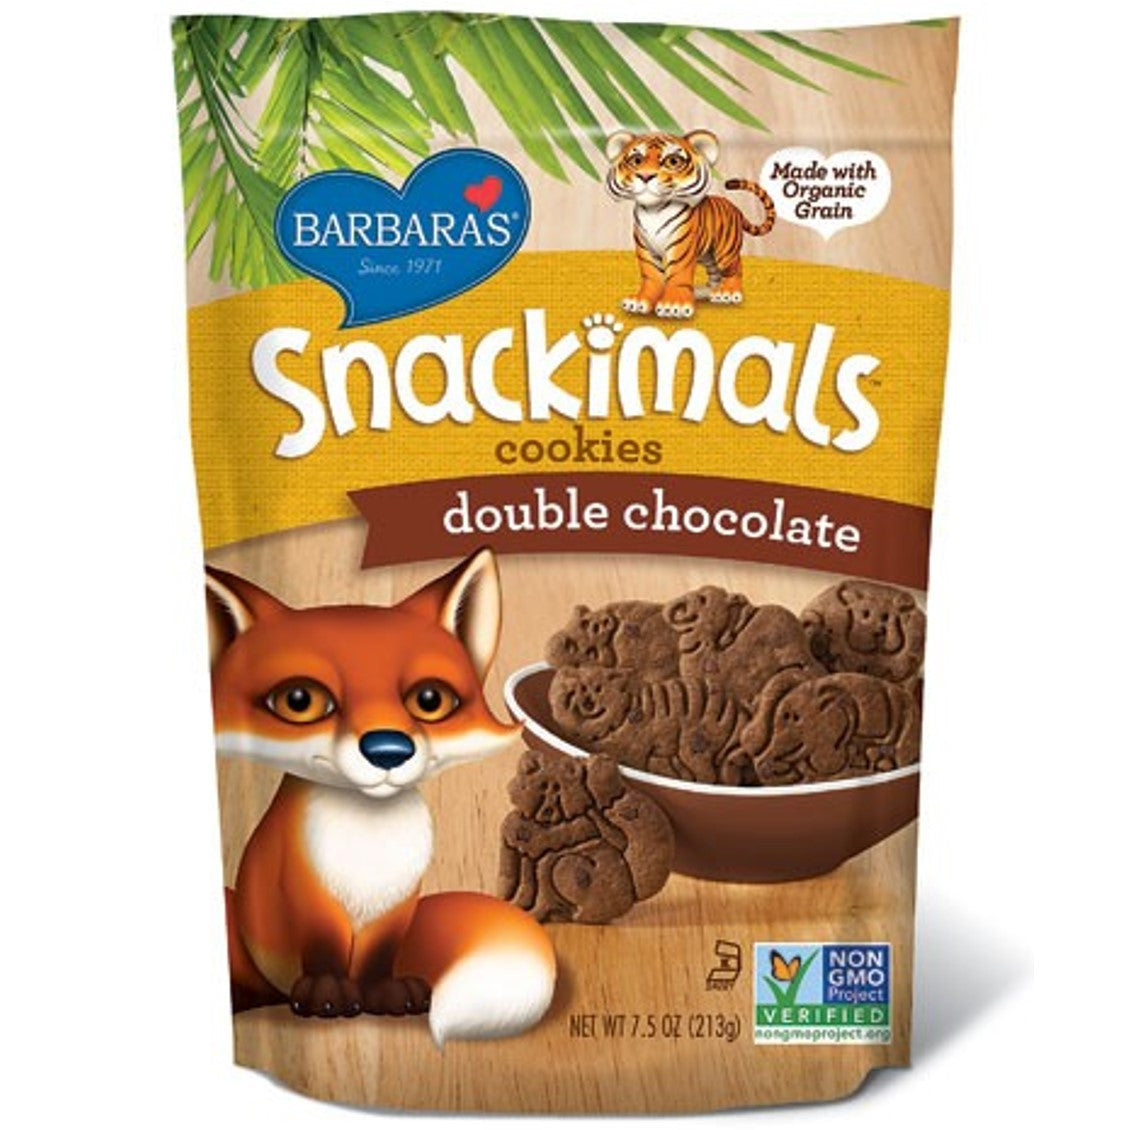 Barbara's Bakery Snackimals Animal Cookies - Double Chocolate, 213g.